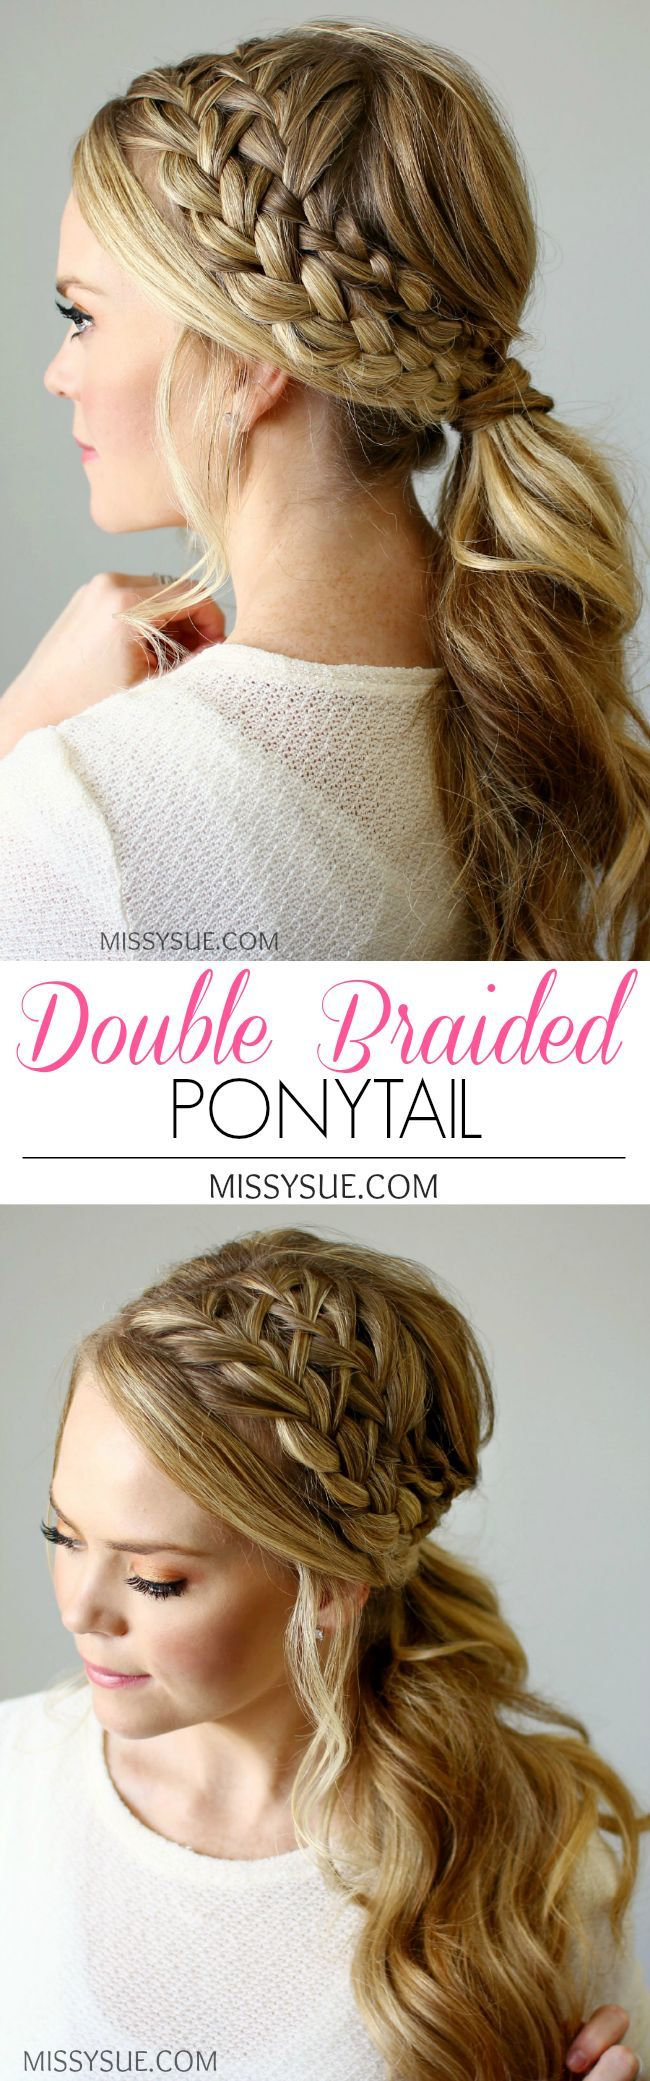 cool Double Braided Ponytail by http://www.danazhairstyles.xyz/braided-hairstyles/double-braided-ponytail/